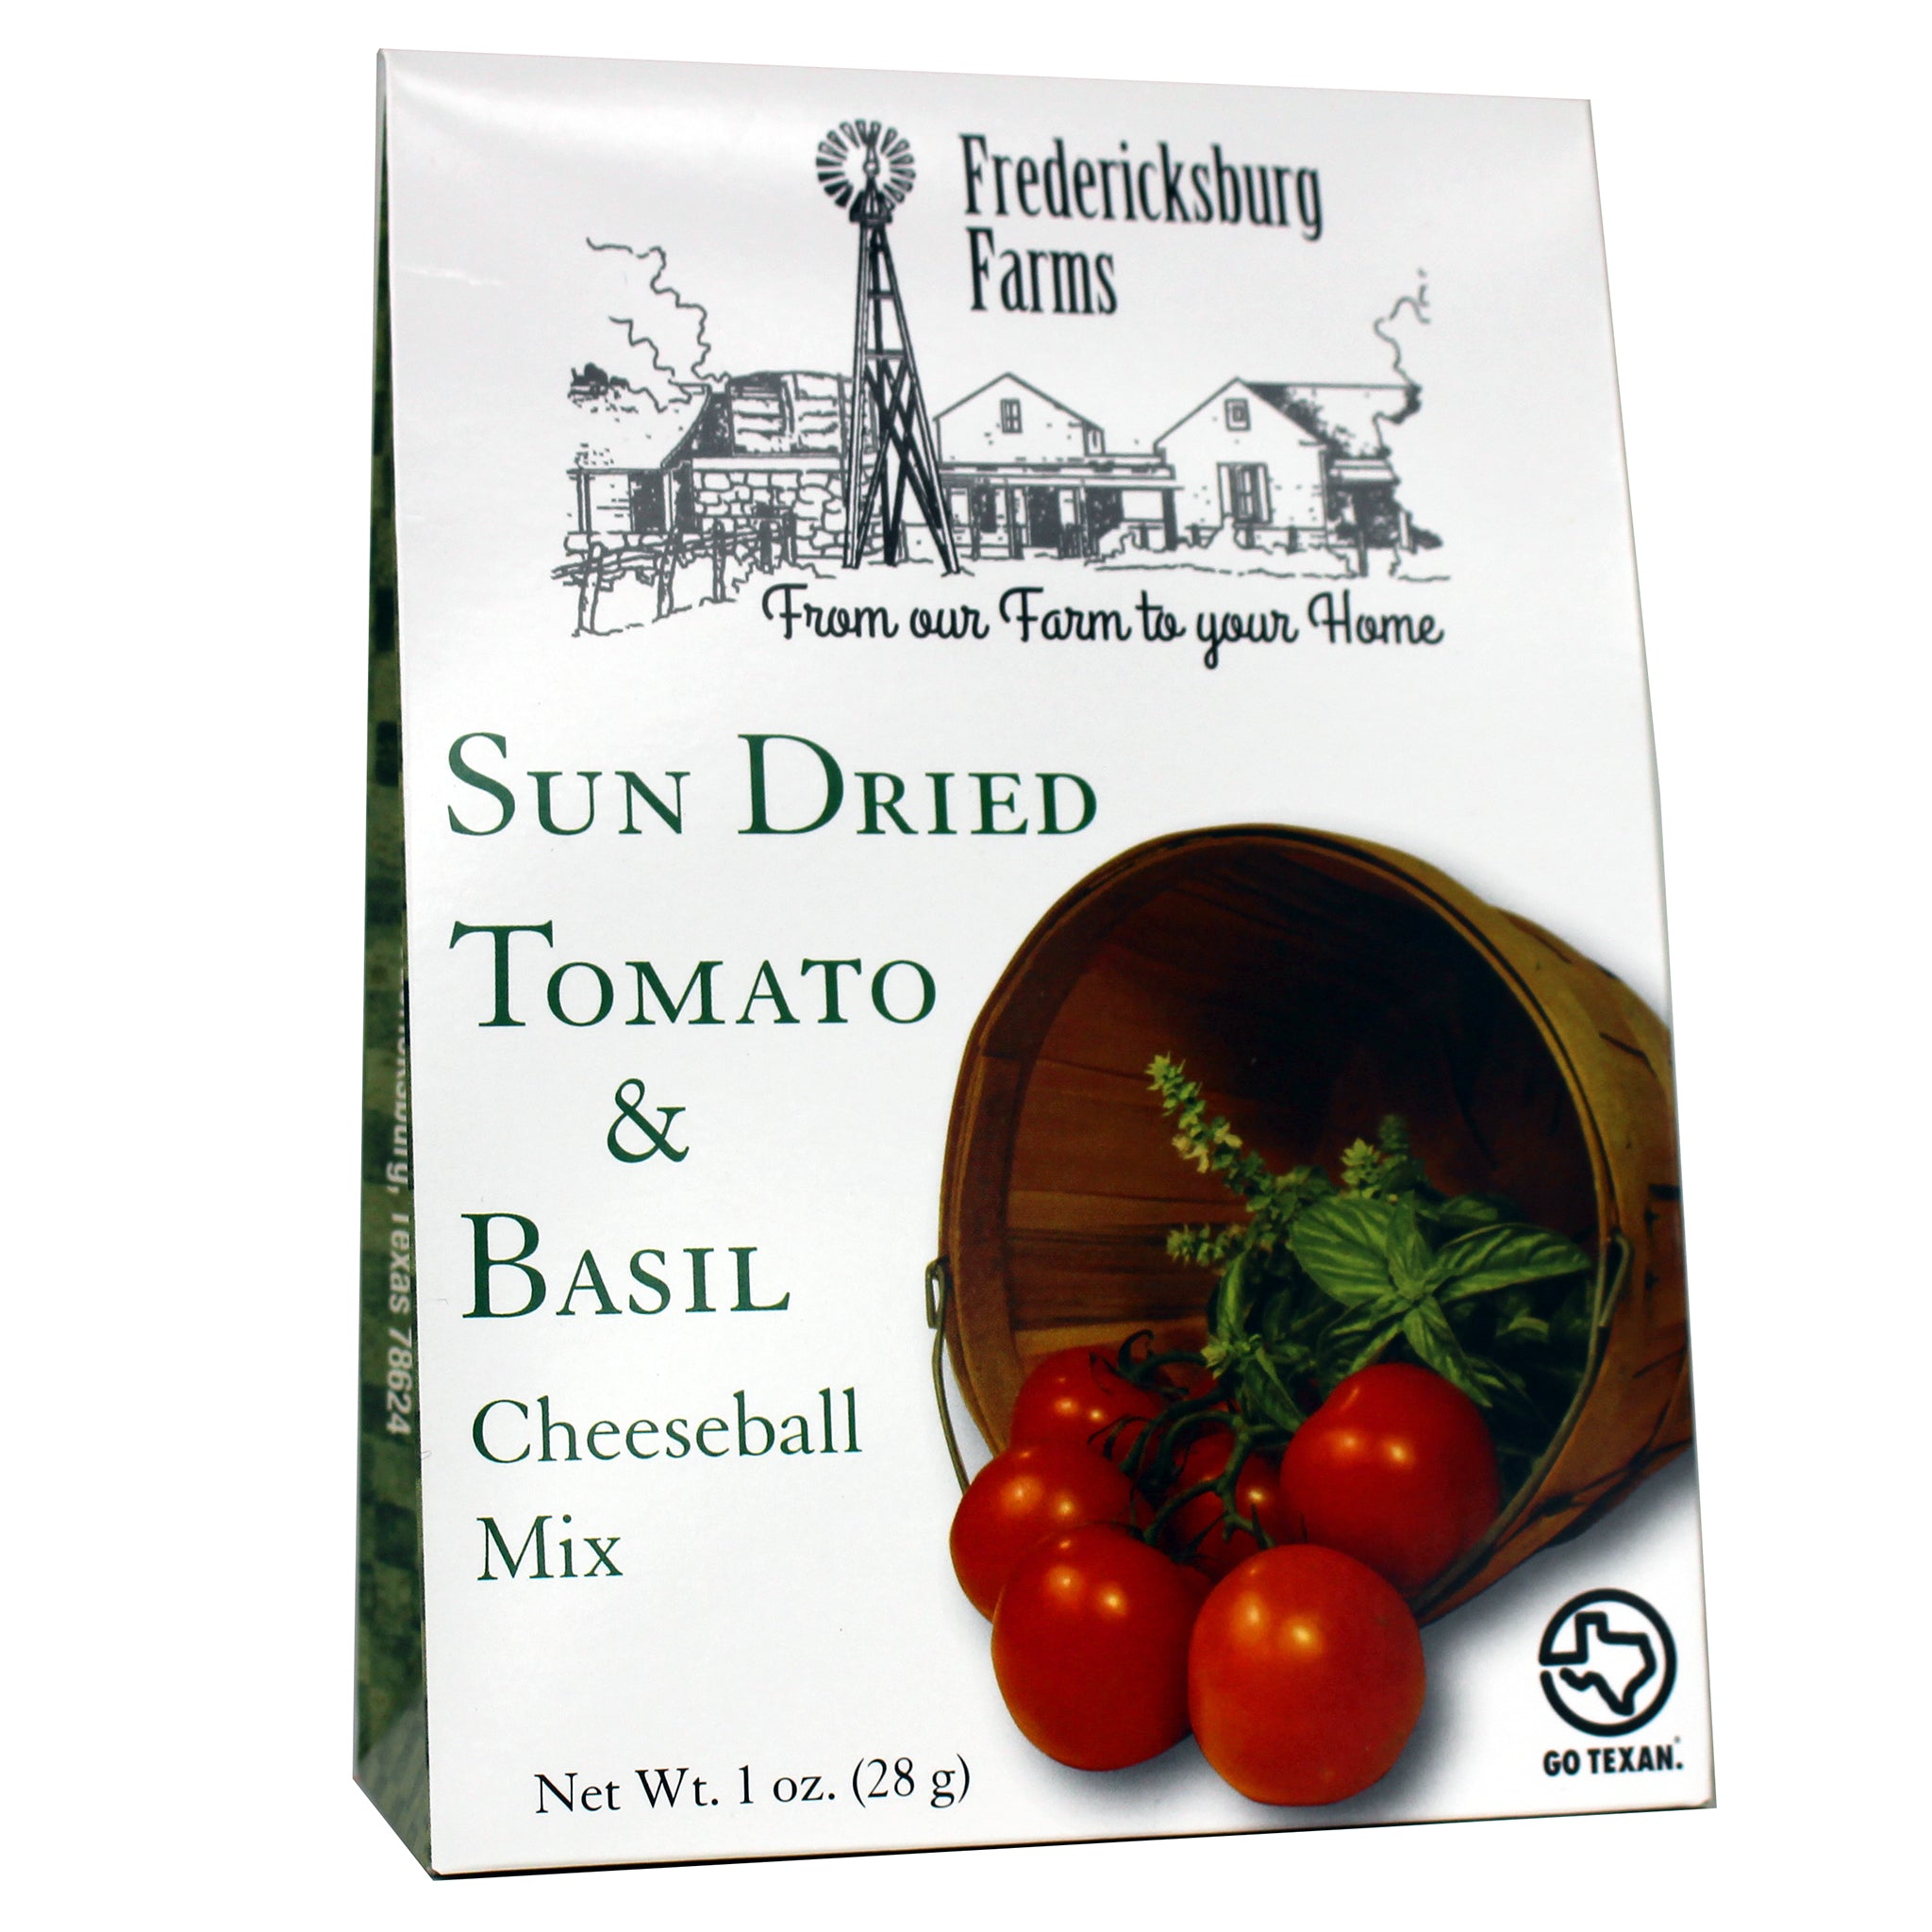 Sun Dried Tomato & Basil Cheeseball Mix - Fredericksburg Farms